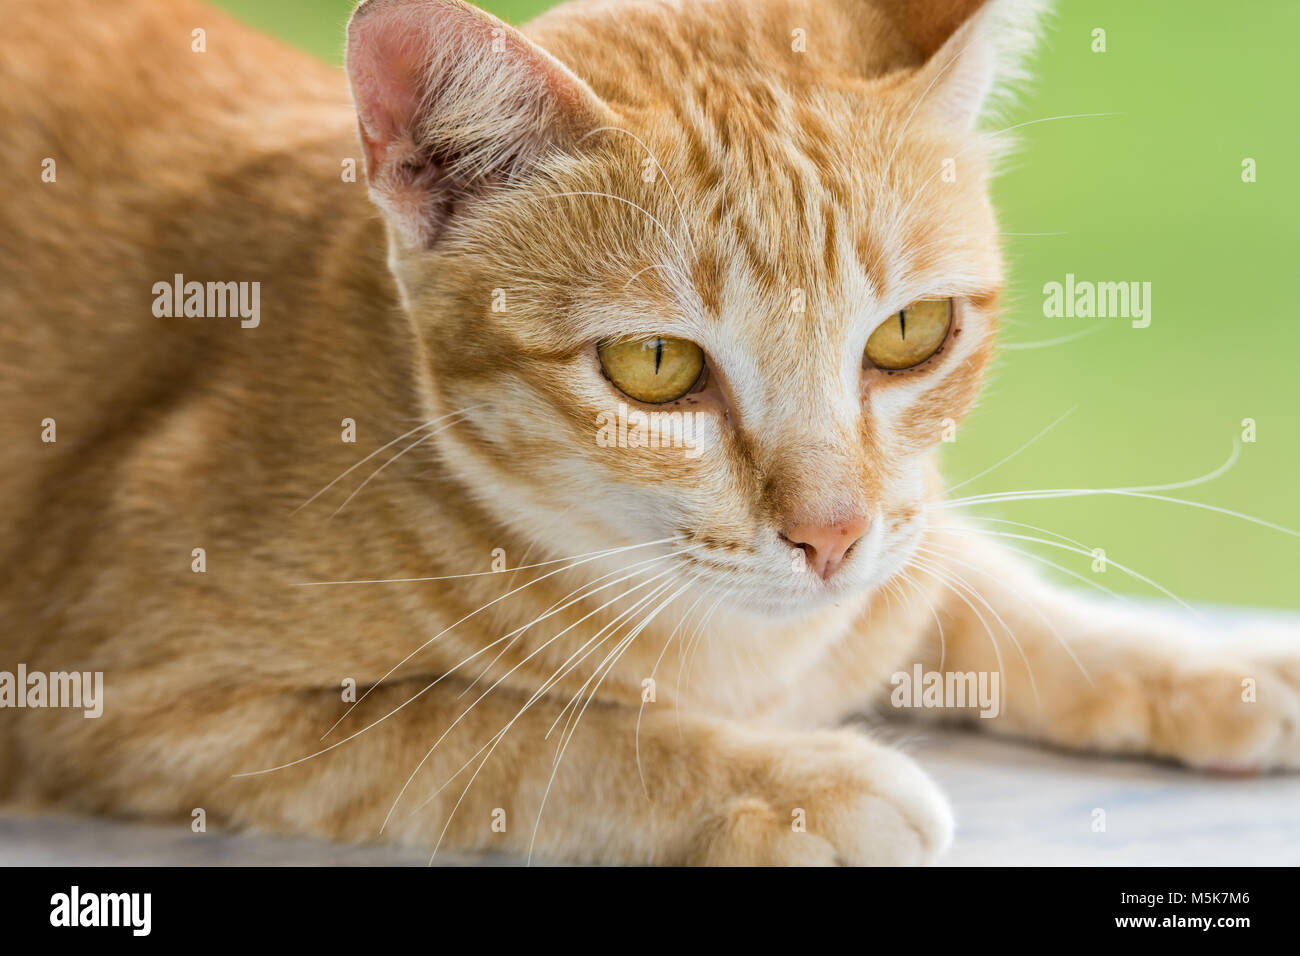 Couching down cute orange stripped cat with green blurred background - Stock Image